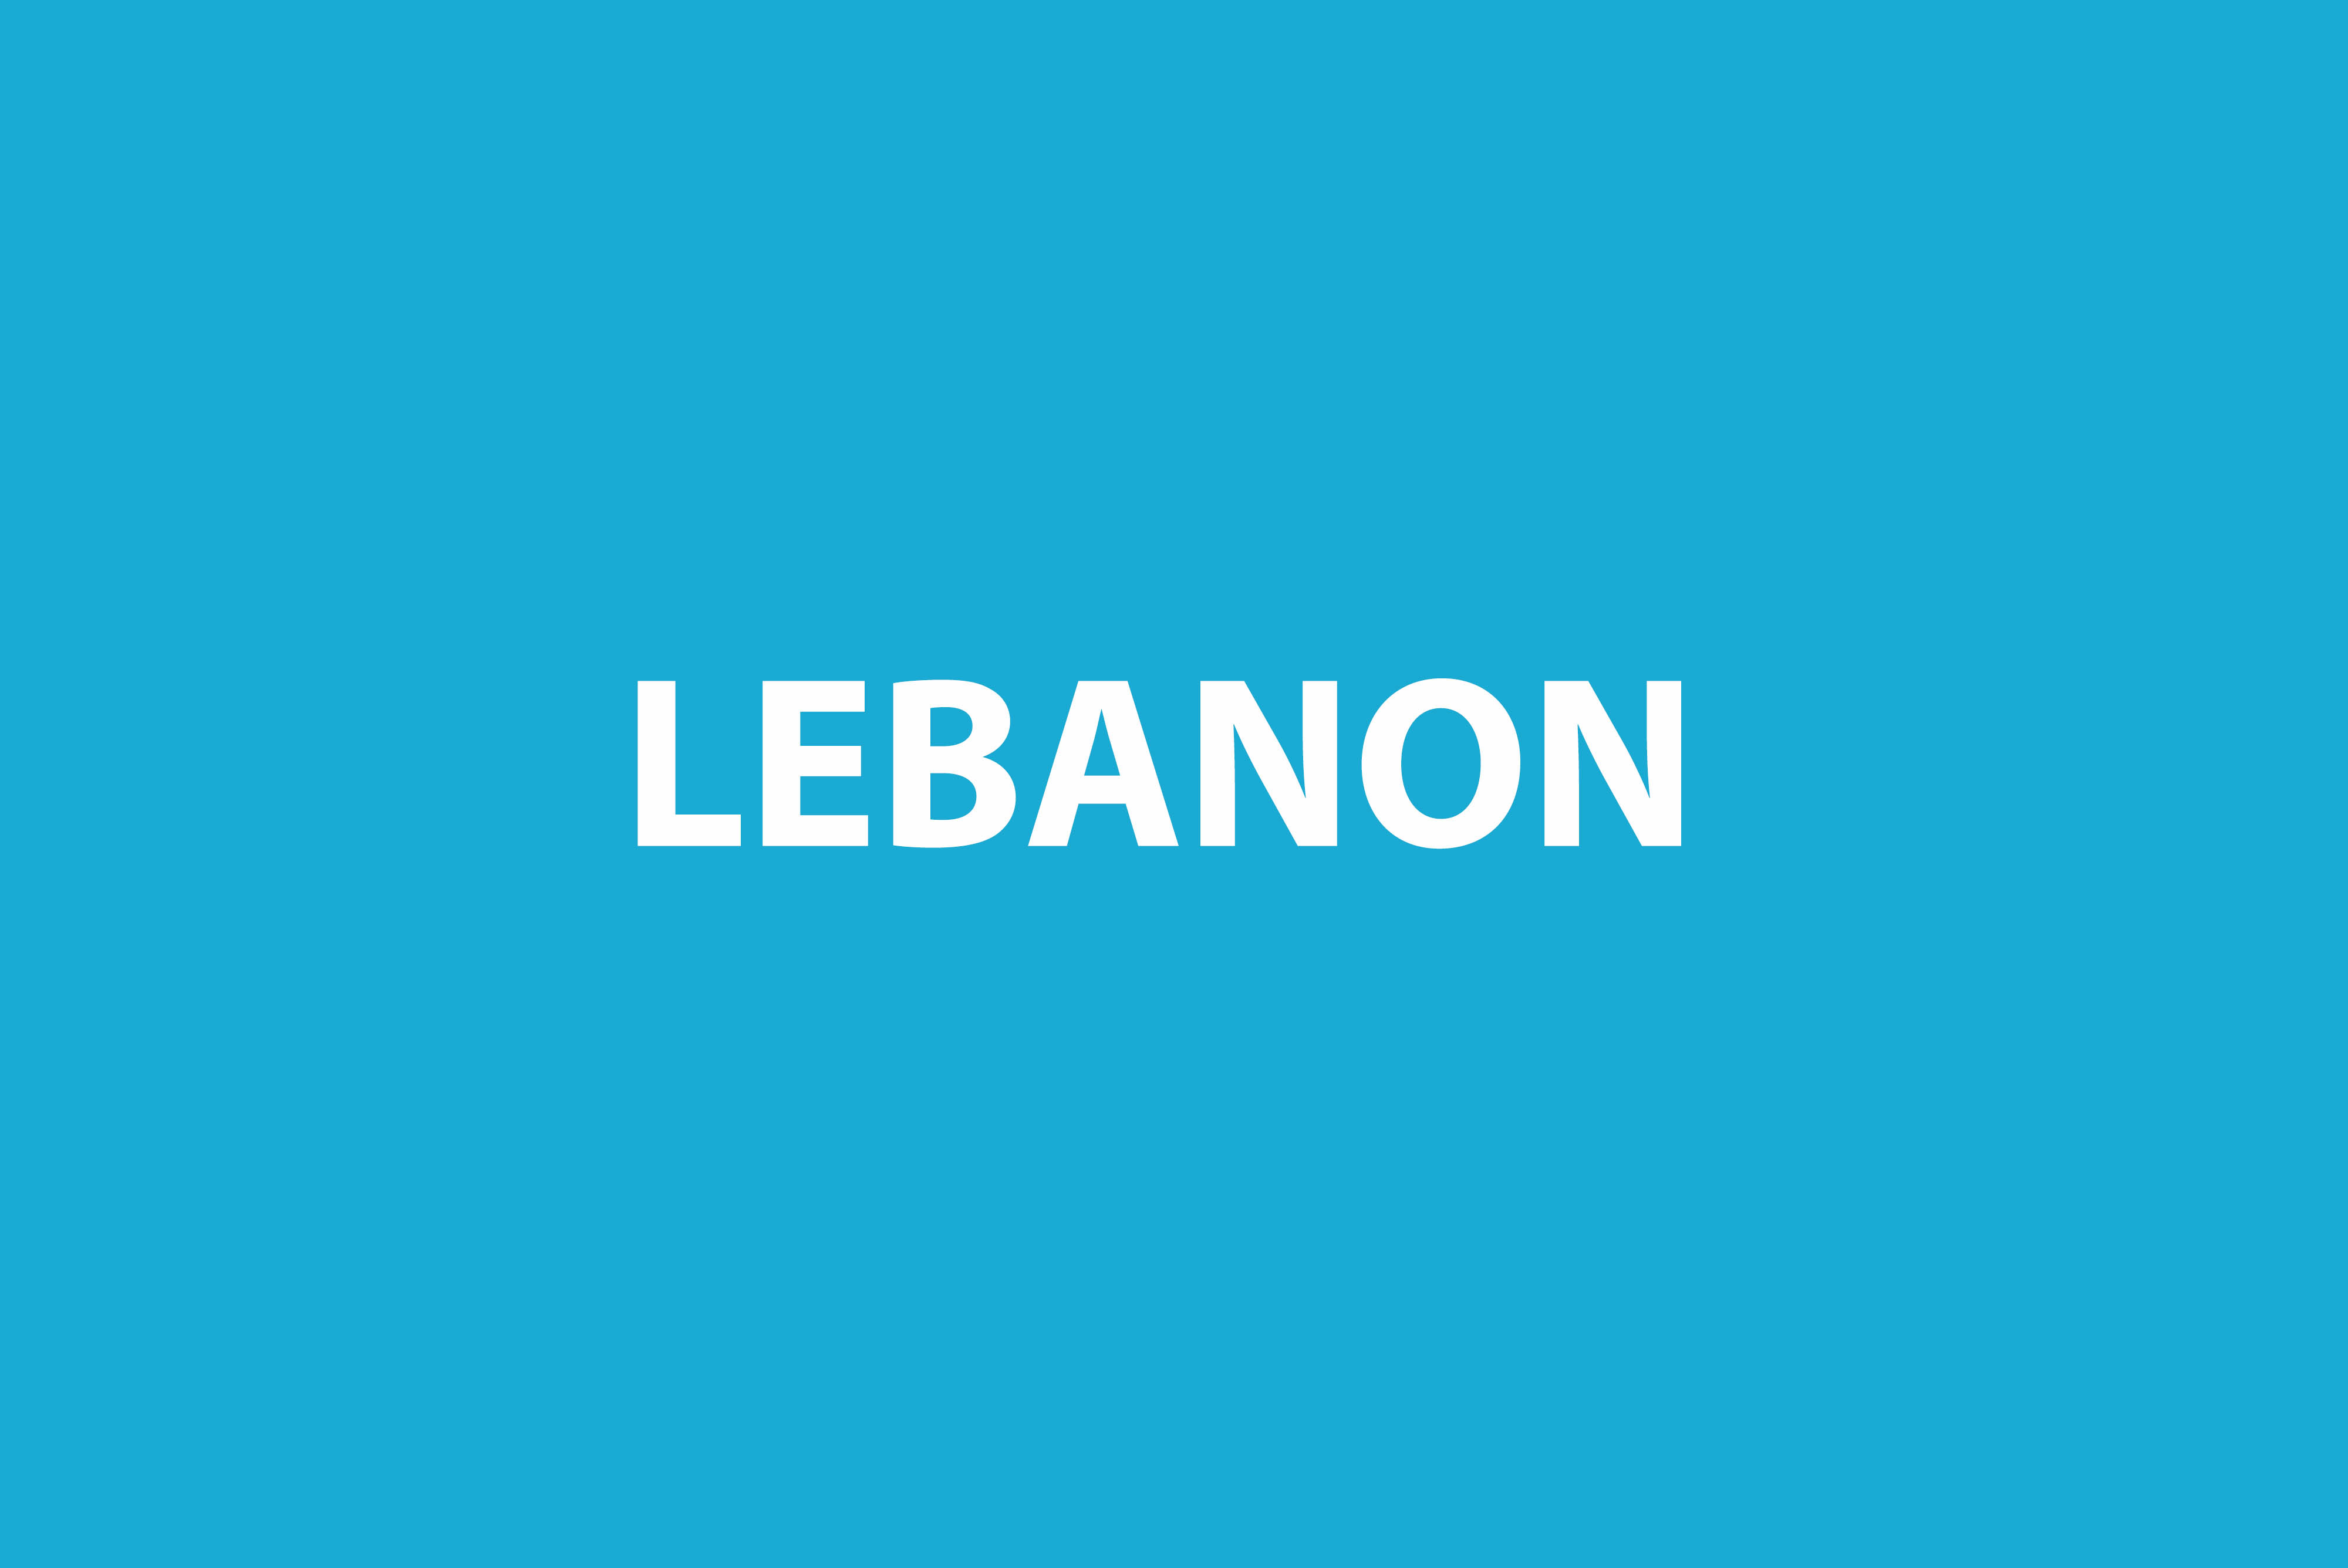 Mental health and Psychosocial support services in Lebanon